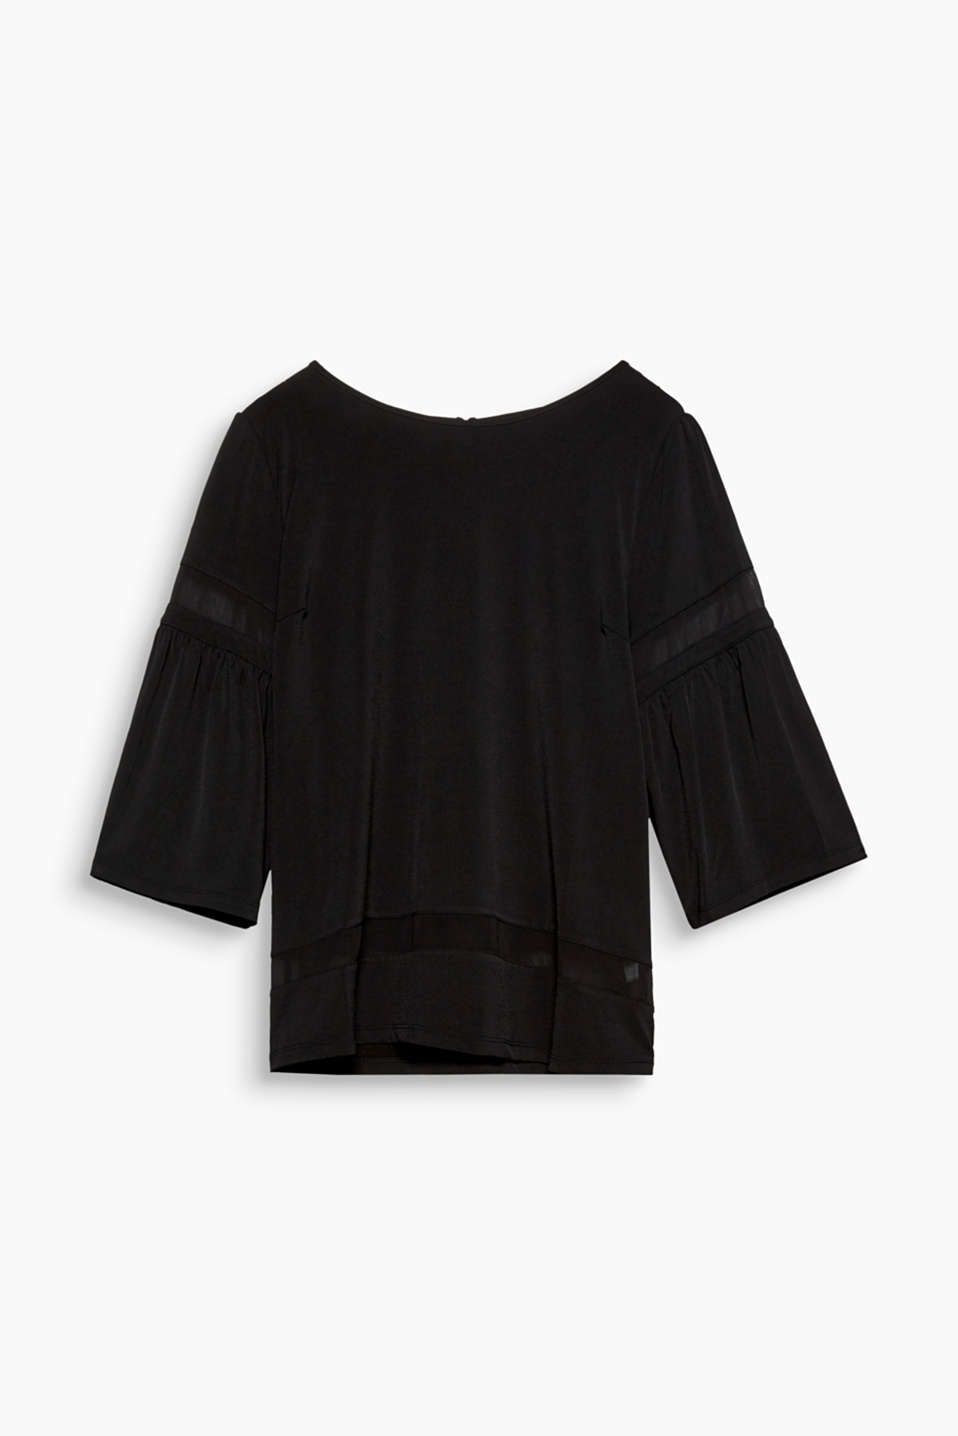 This top is particularly stylish because of its chiffon trim at the hem and the wide three-quarter length sleeves!